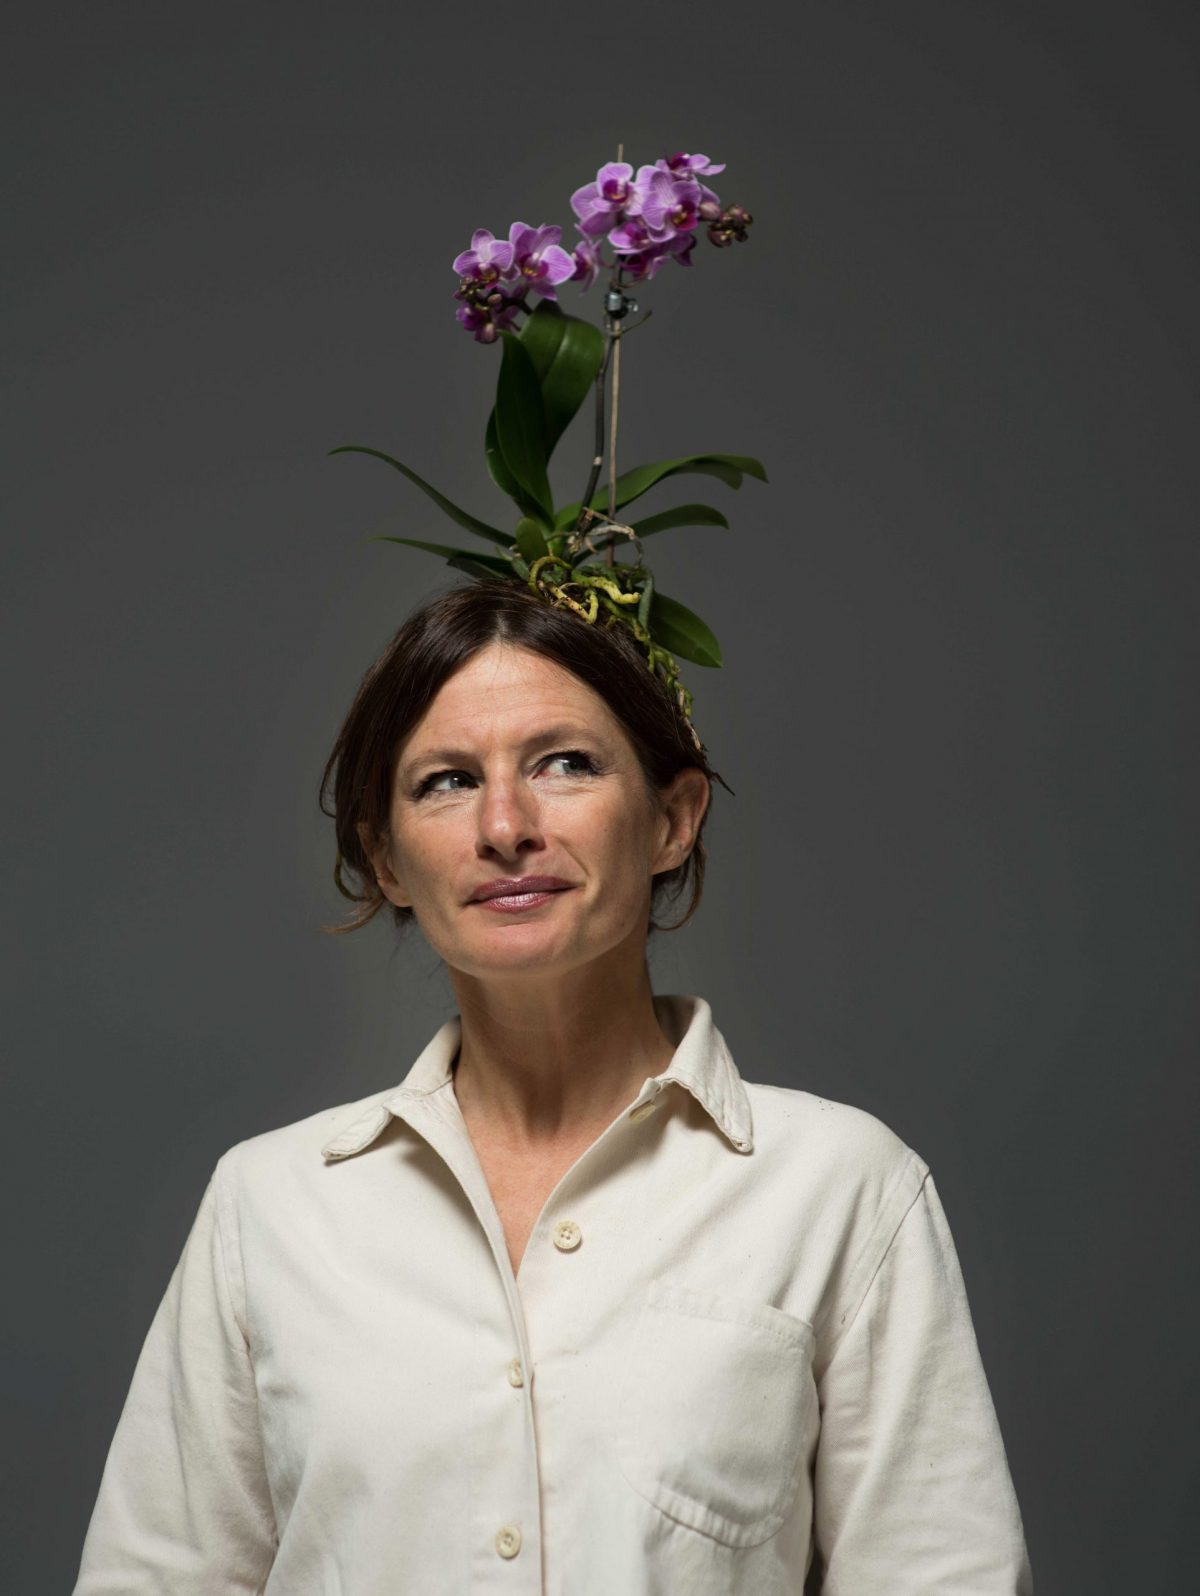 Woman with an elaborate orchid headdress